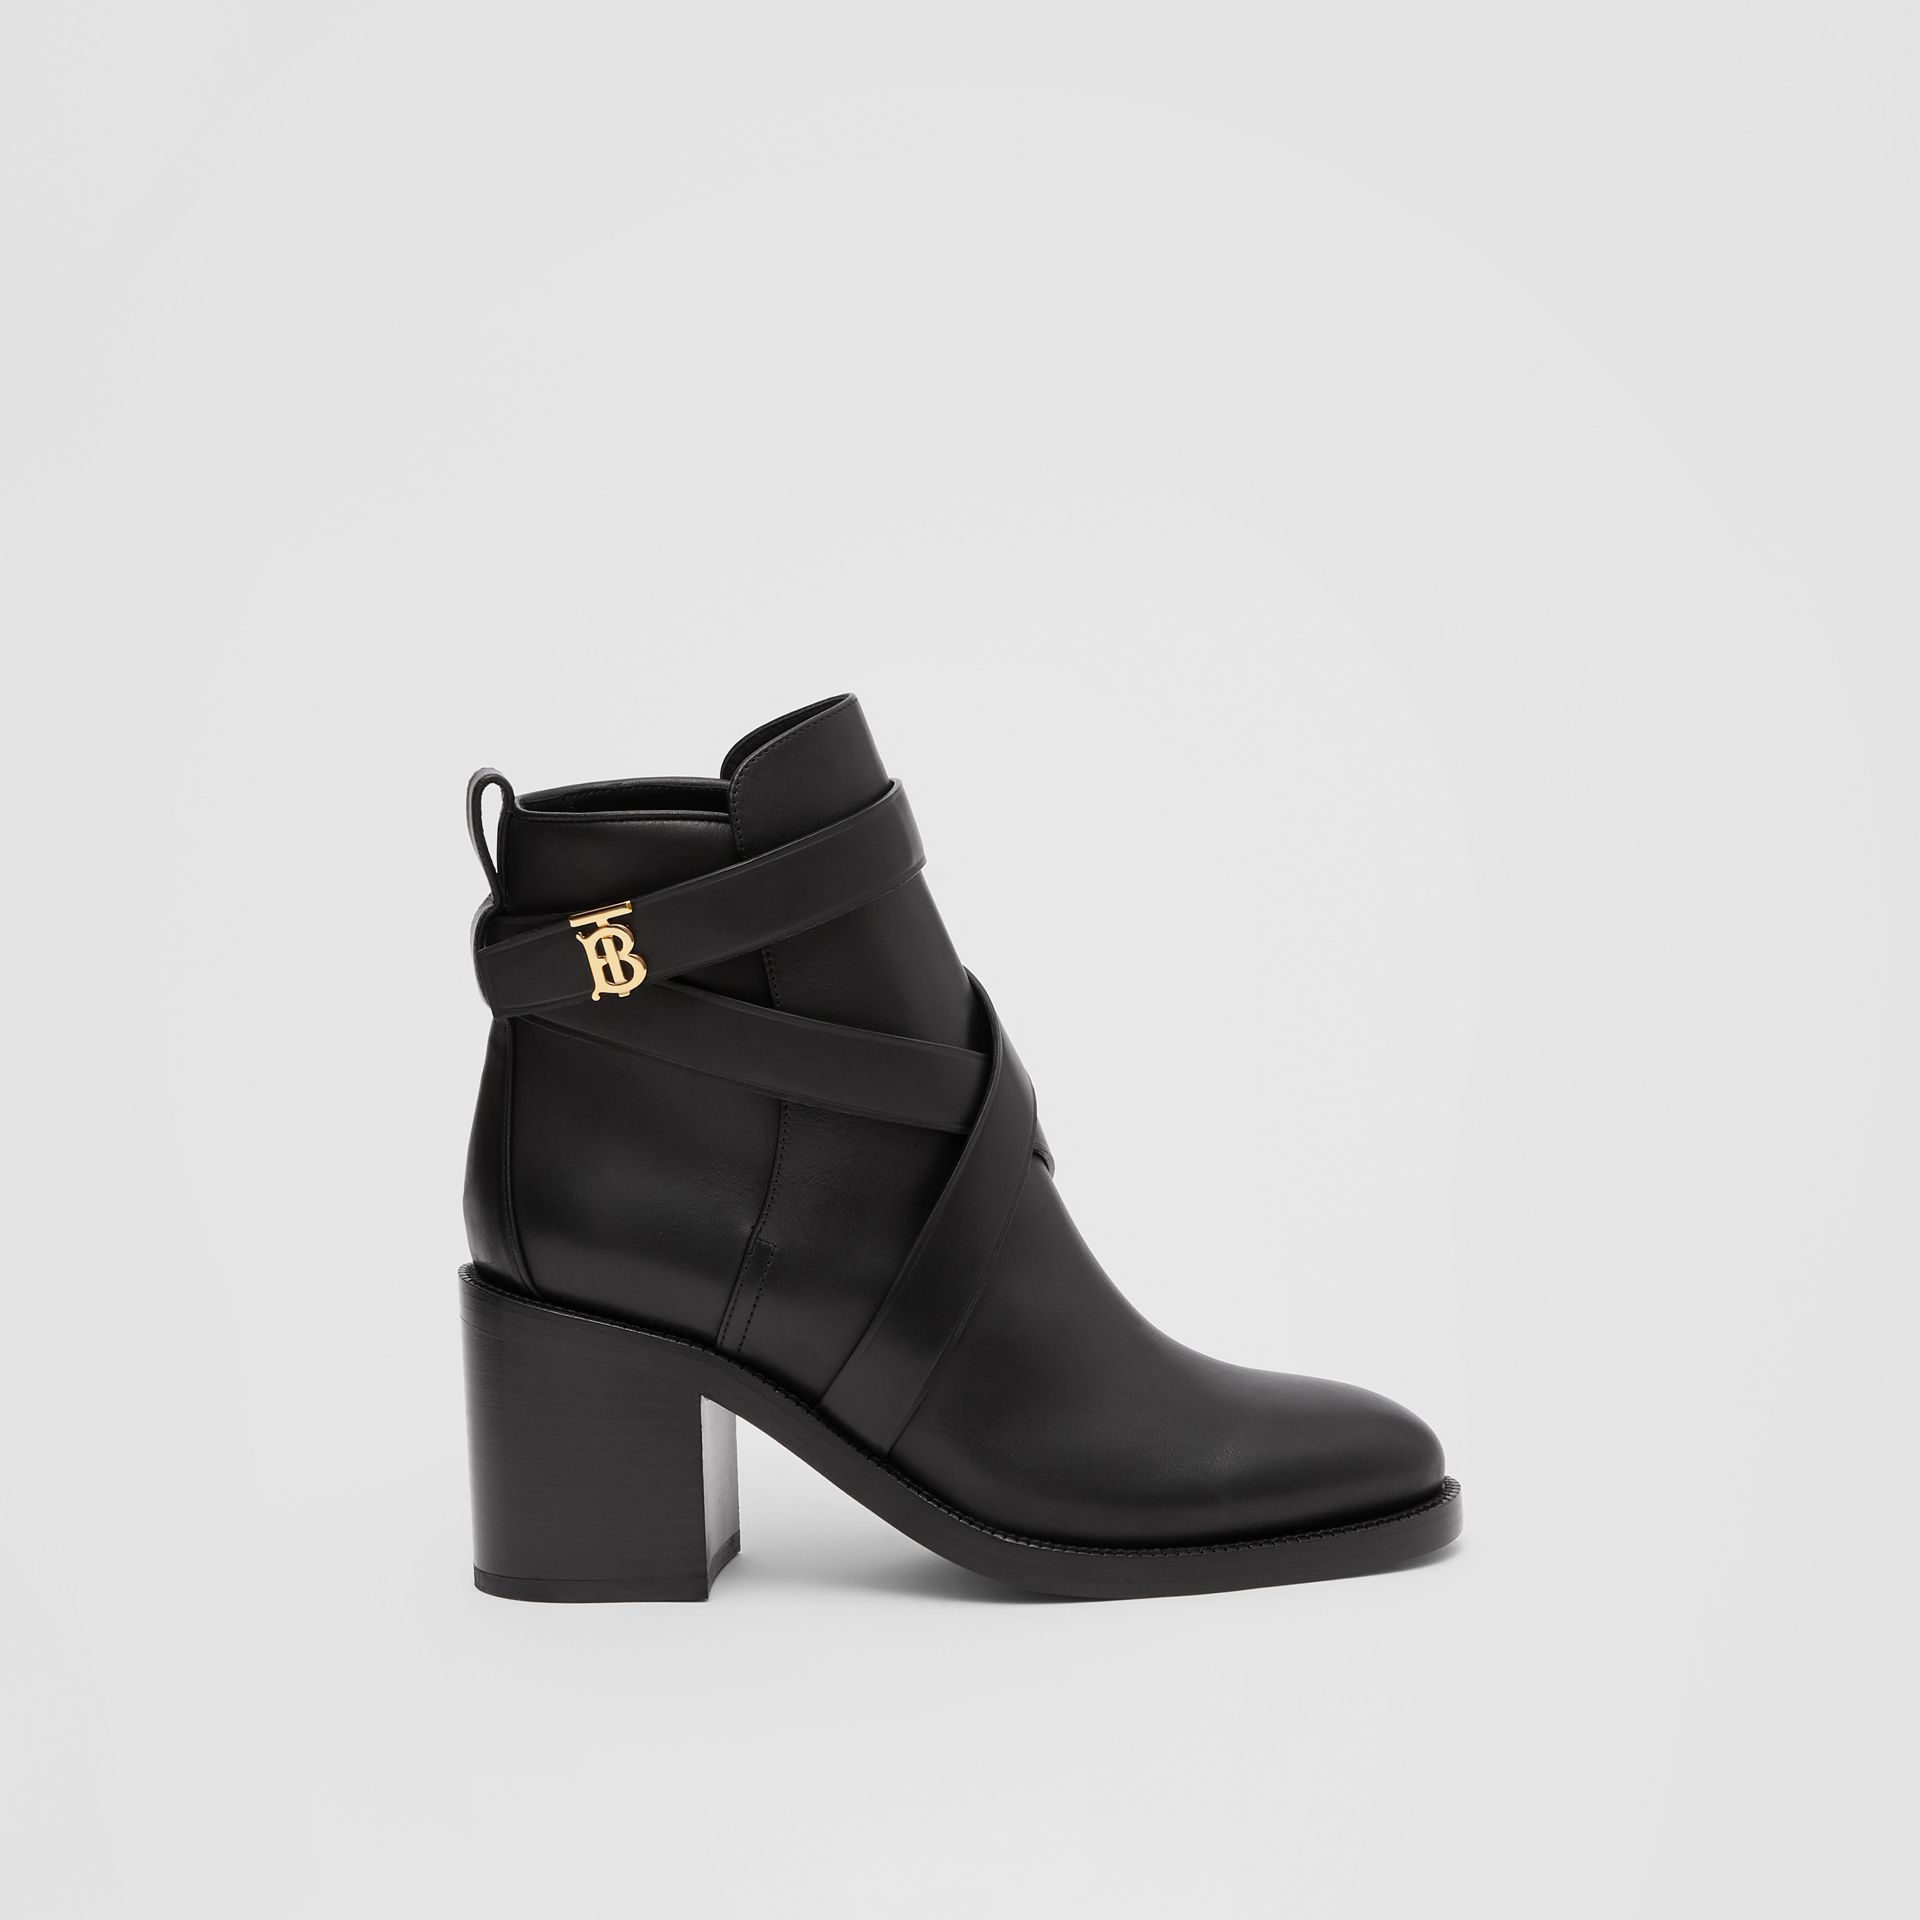 Monogram Motif Leather Ankle Boots in Black - Women | Burberry United Kingdom - gallery image 4